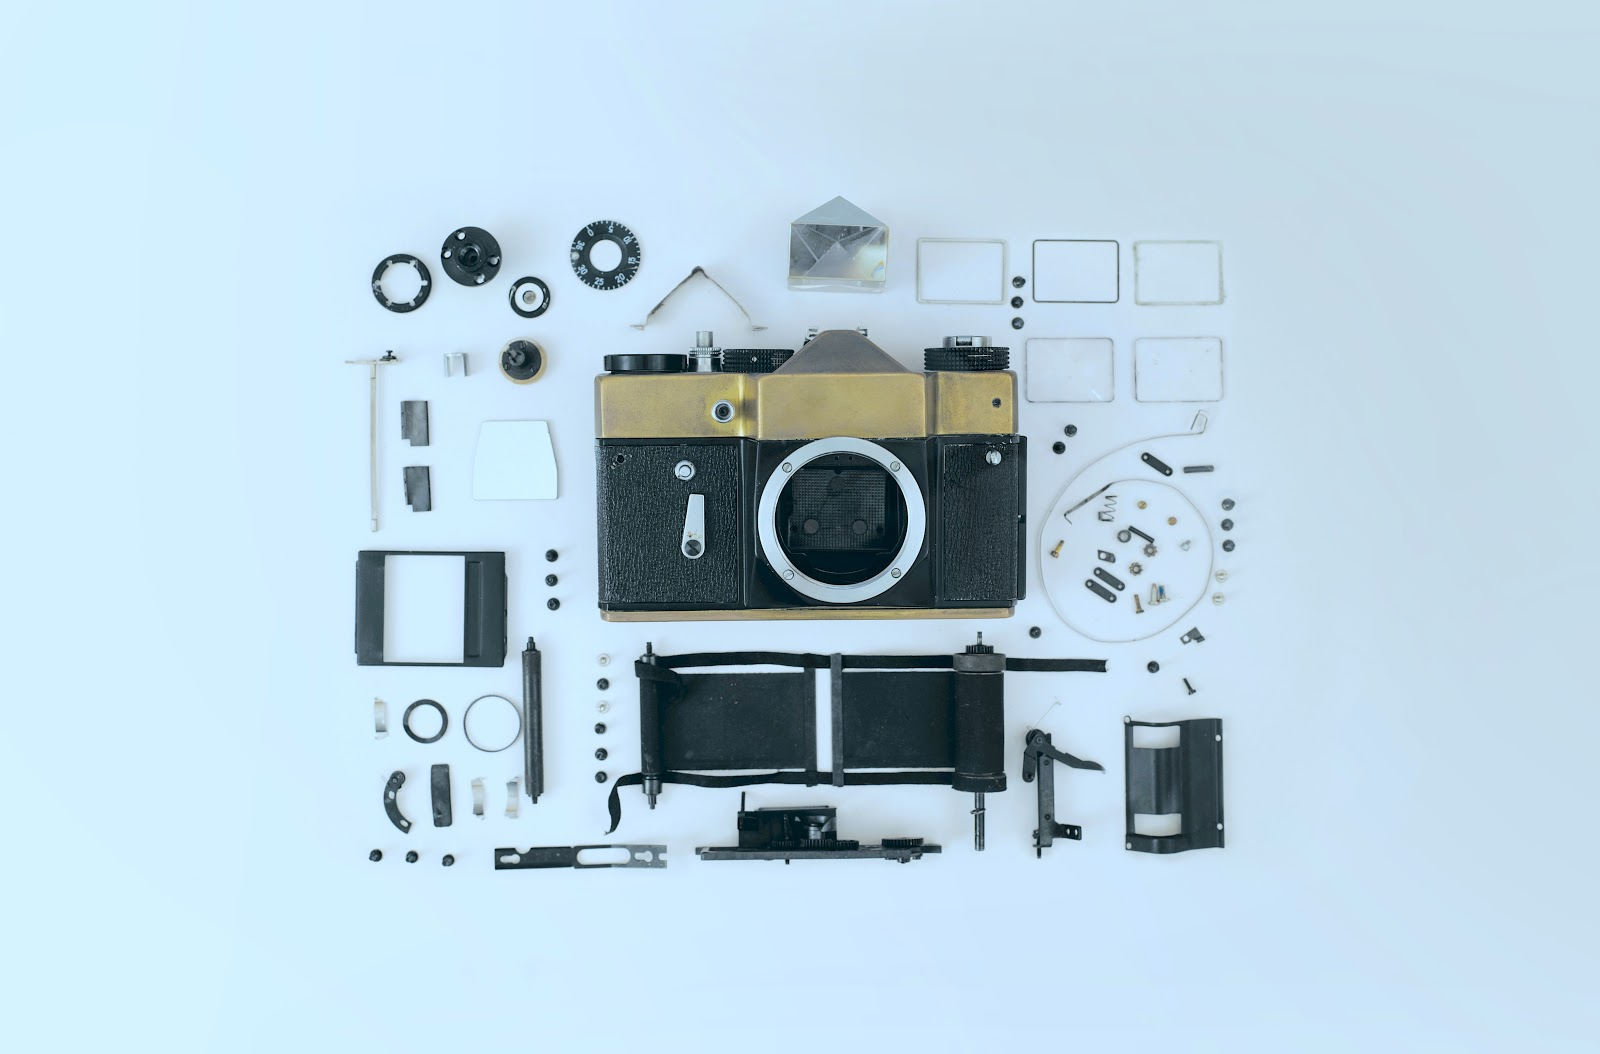 A disassembled single lens reflex camera with all its parts